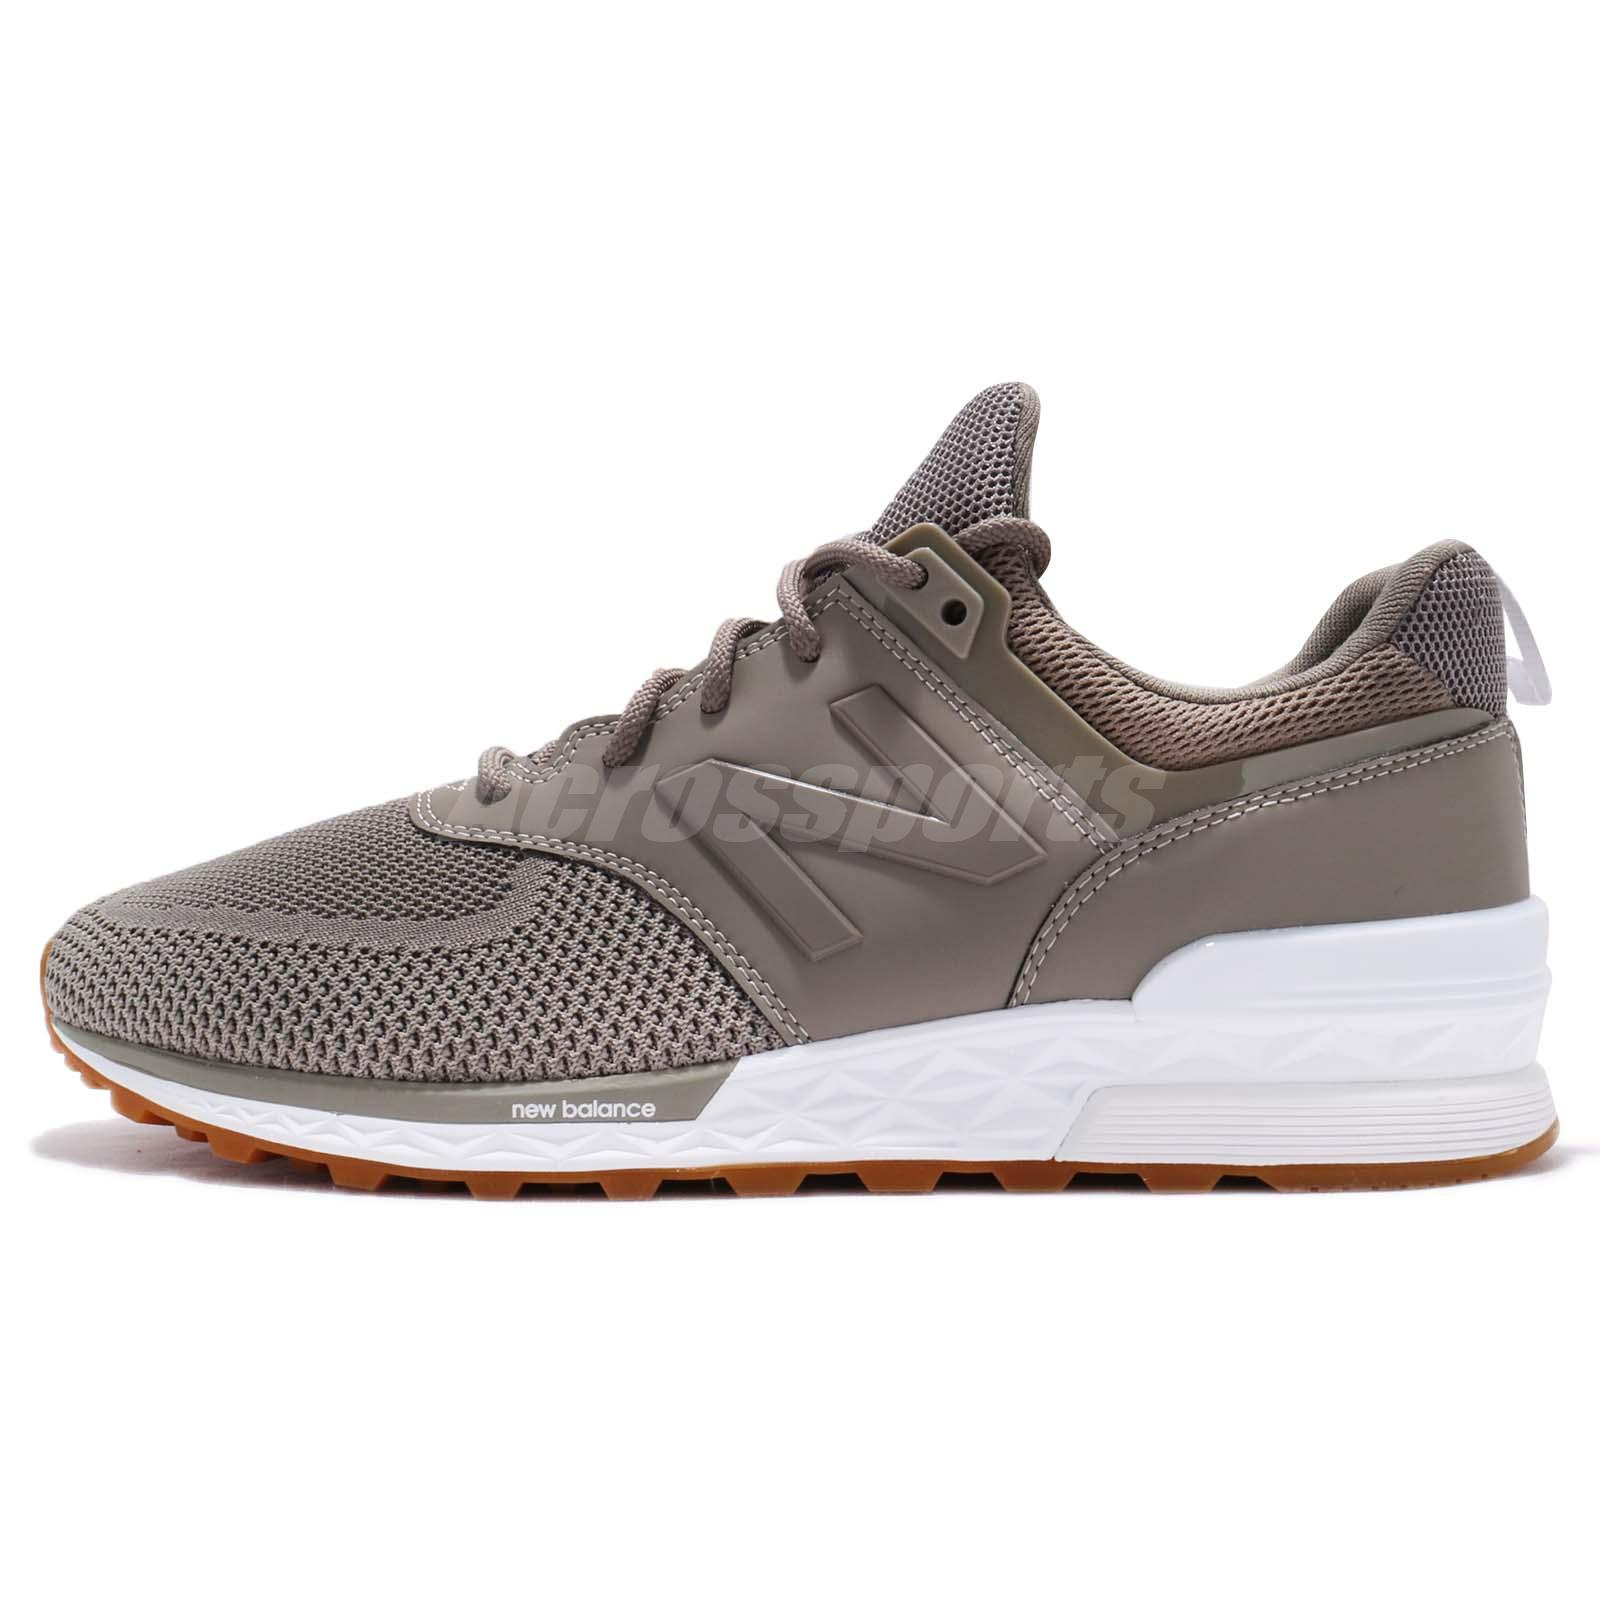 énorme réduction 6c418 f0e05 Details about New Balance MS574EMG D 574 Grey Tan White Men Running Shoes  Sneakers MS574EMGD